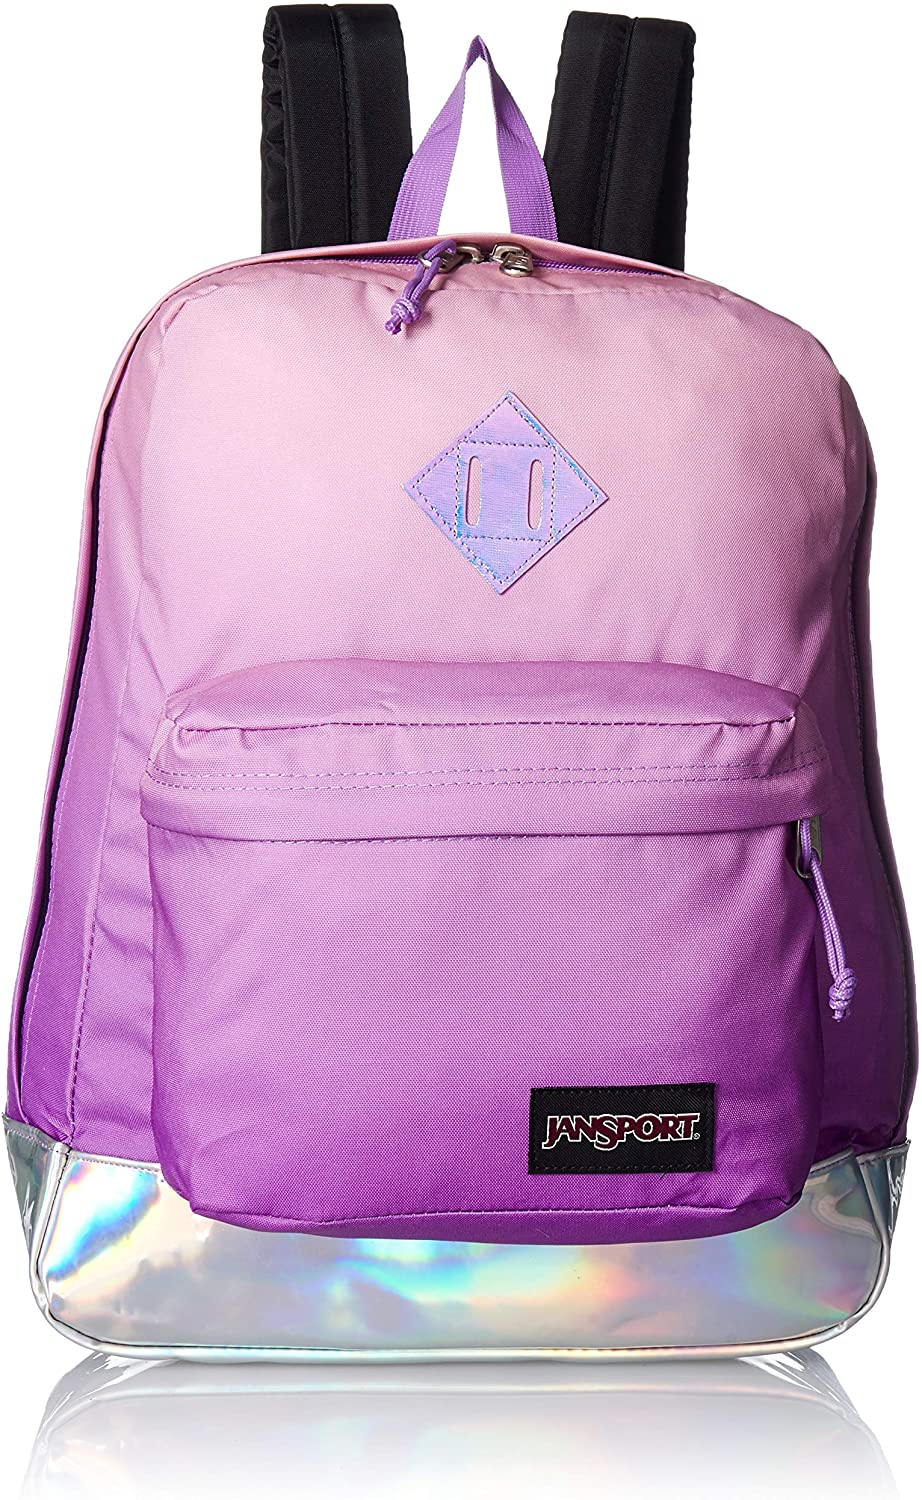 JanSport Super FX Backpack - Trendy School Pack With A Unique Textured Surface